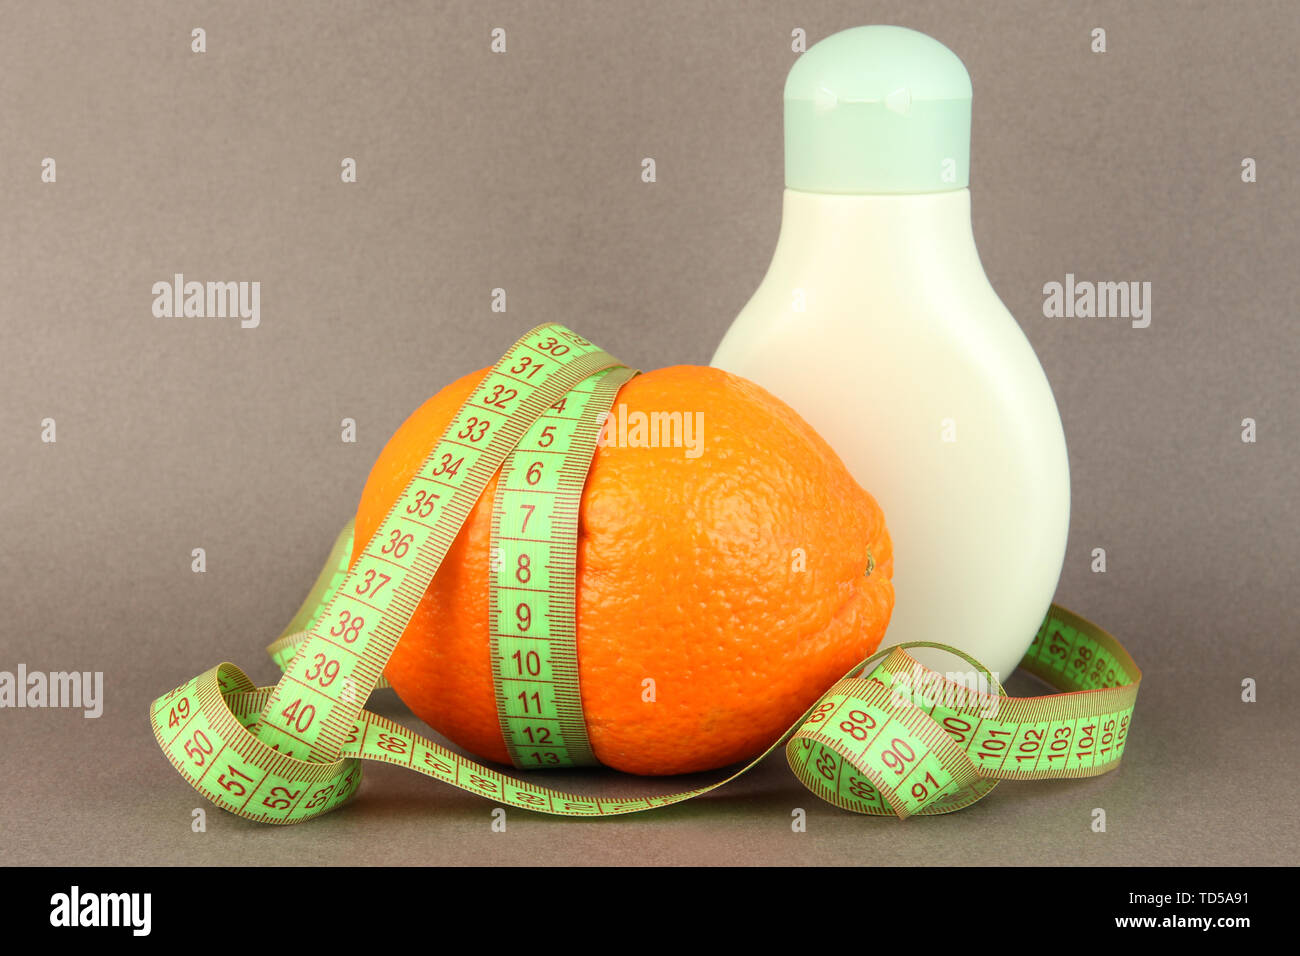 Orange with measuring tape and body cream, on color background - Stock Image